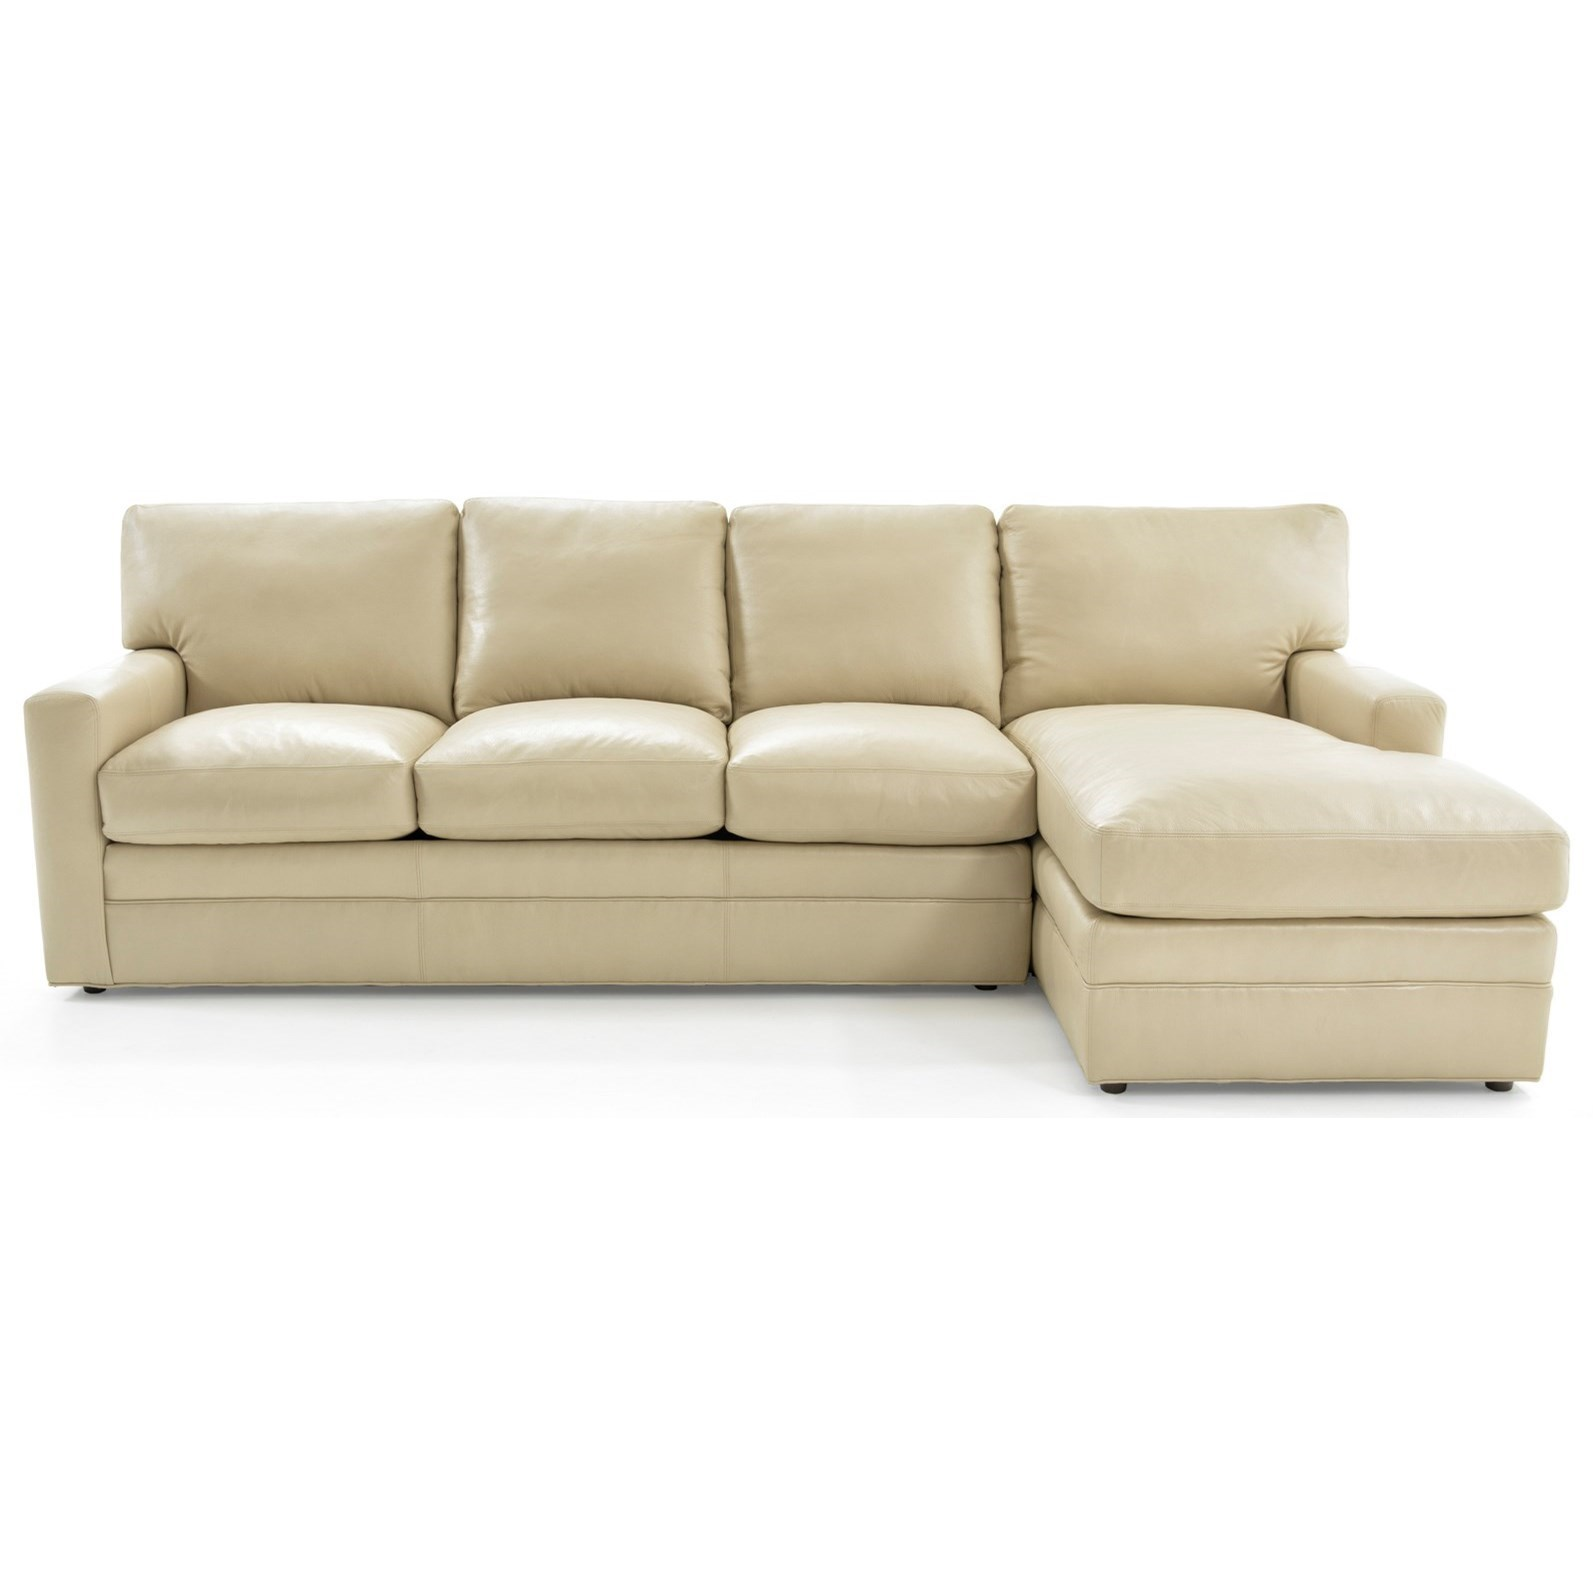 l shaped sectional sofa. Whittemore-Sherrill 4422 Pc L-Shape Sectional Sofa W/ RAF Chaise L Shaped A